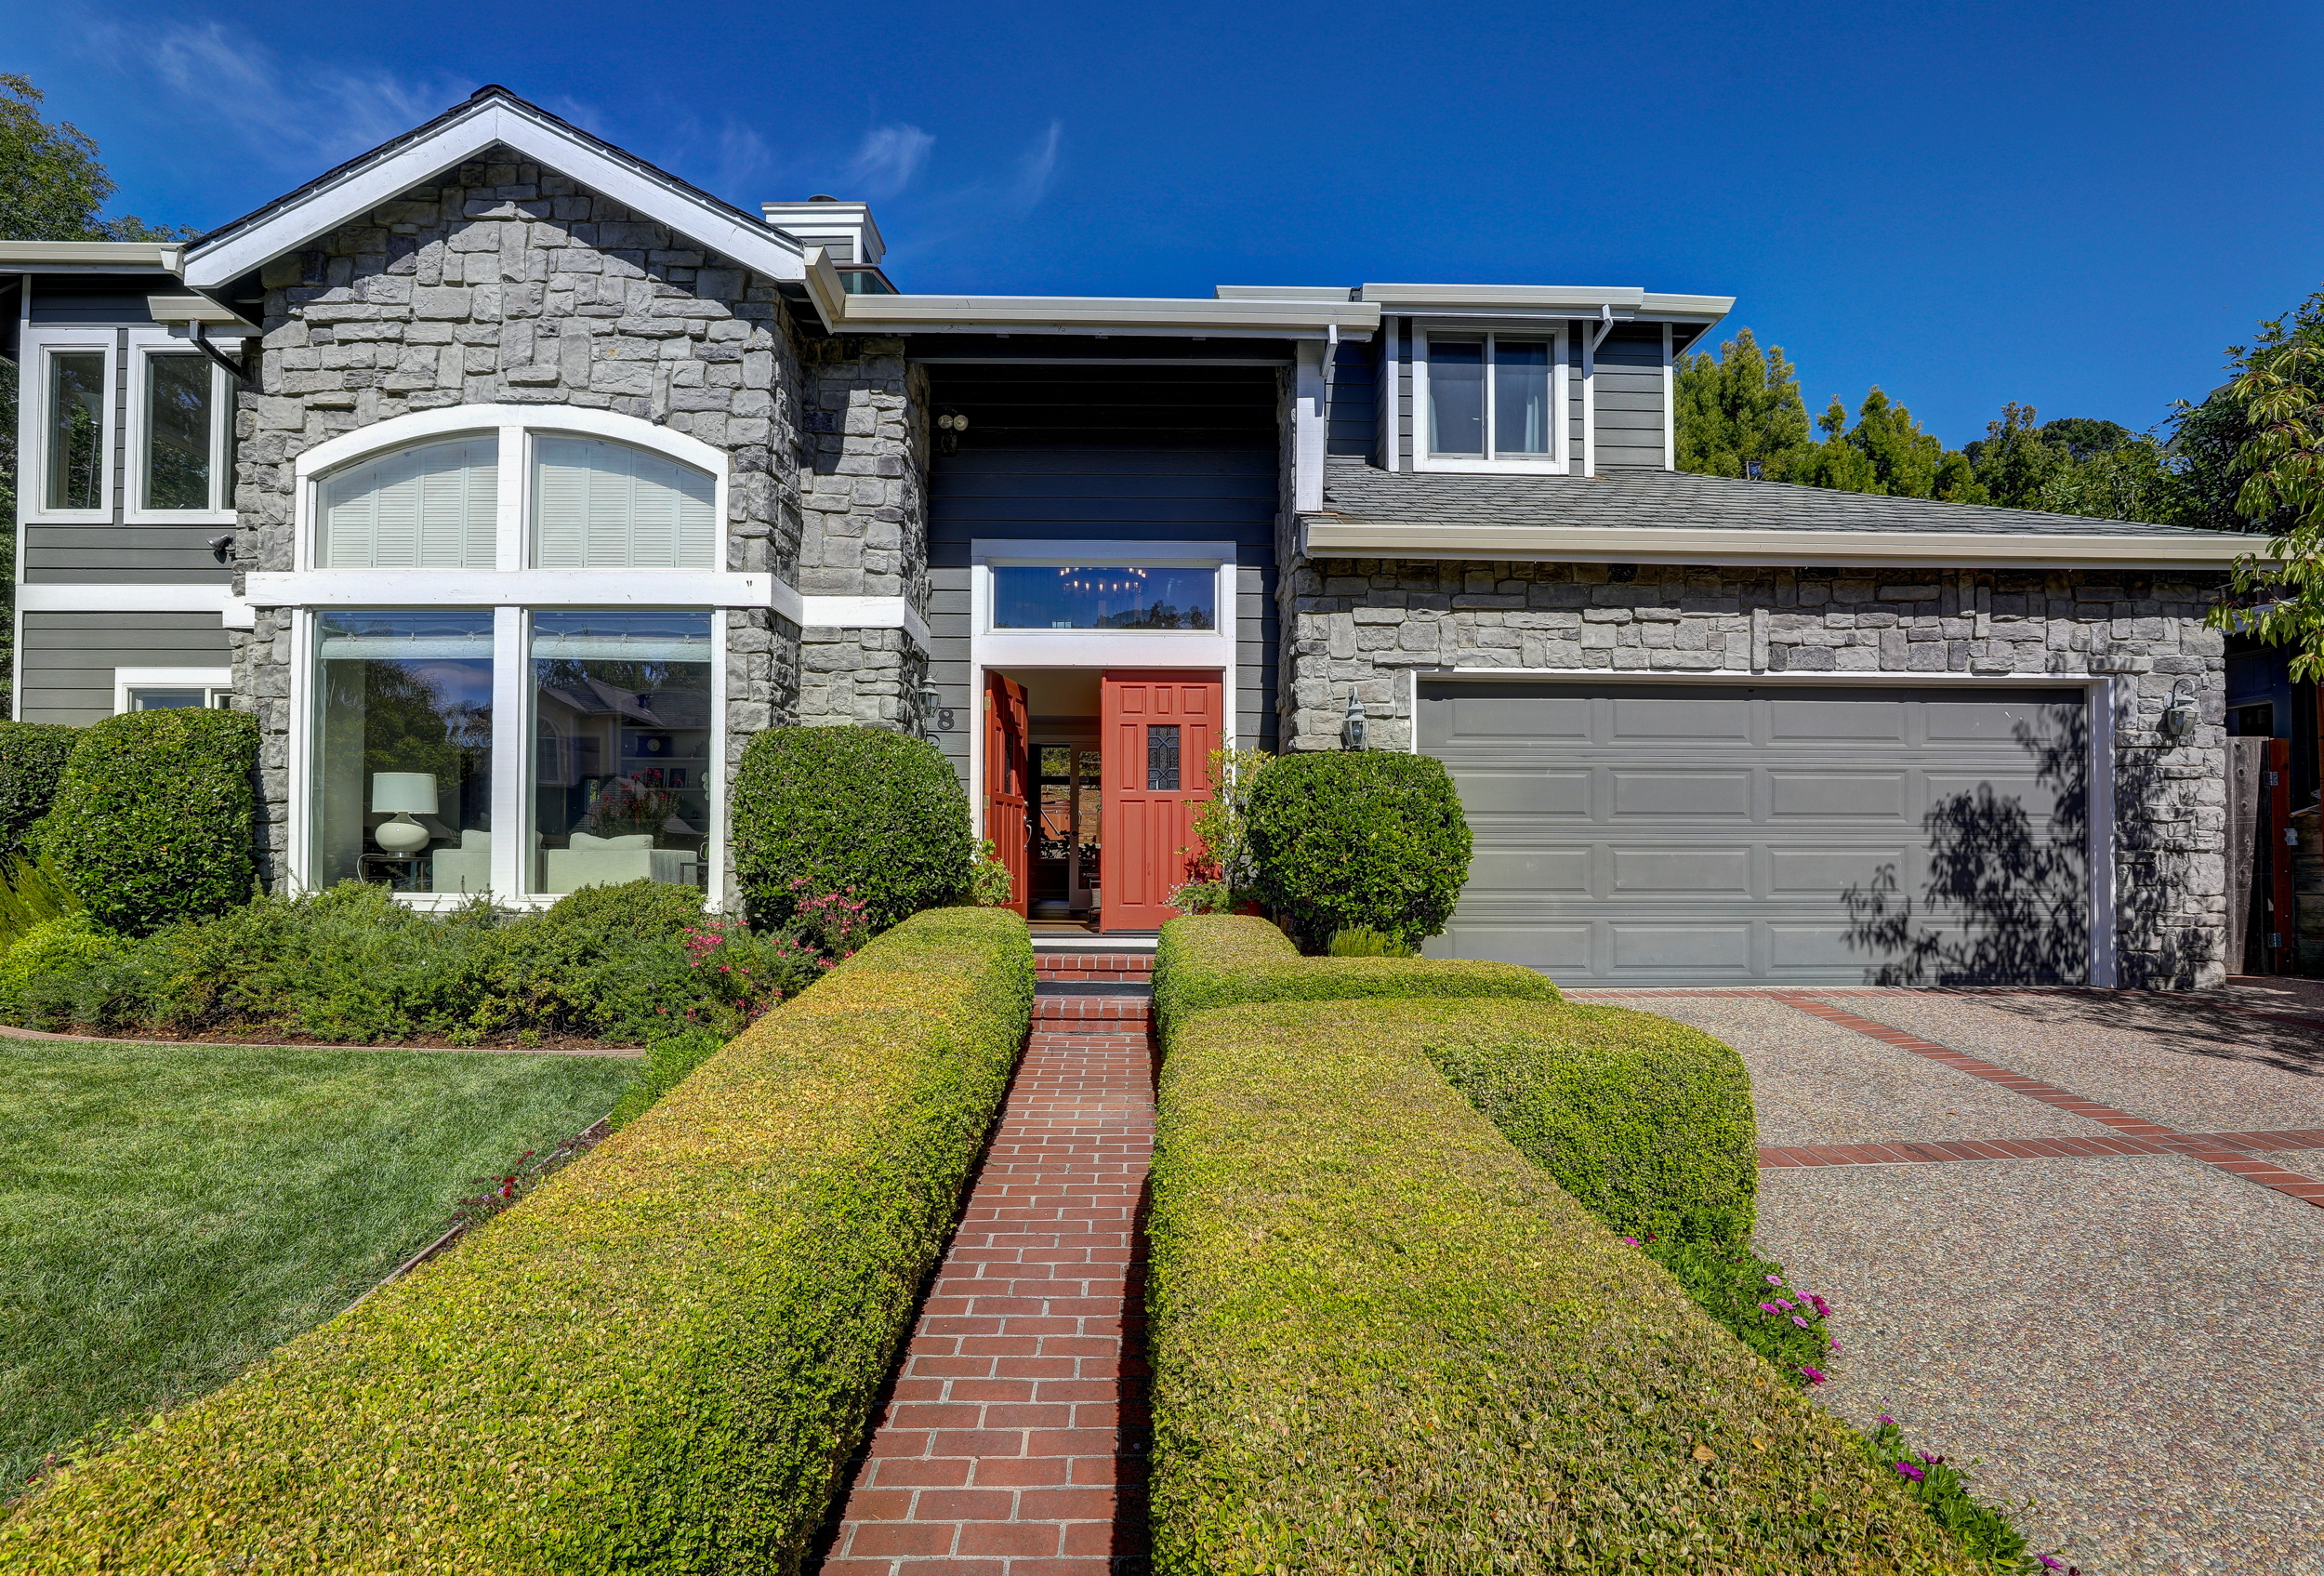 8Parkside 13 - Own Marin with Compass - Marin County Best Realtor.jpg